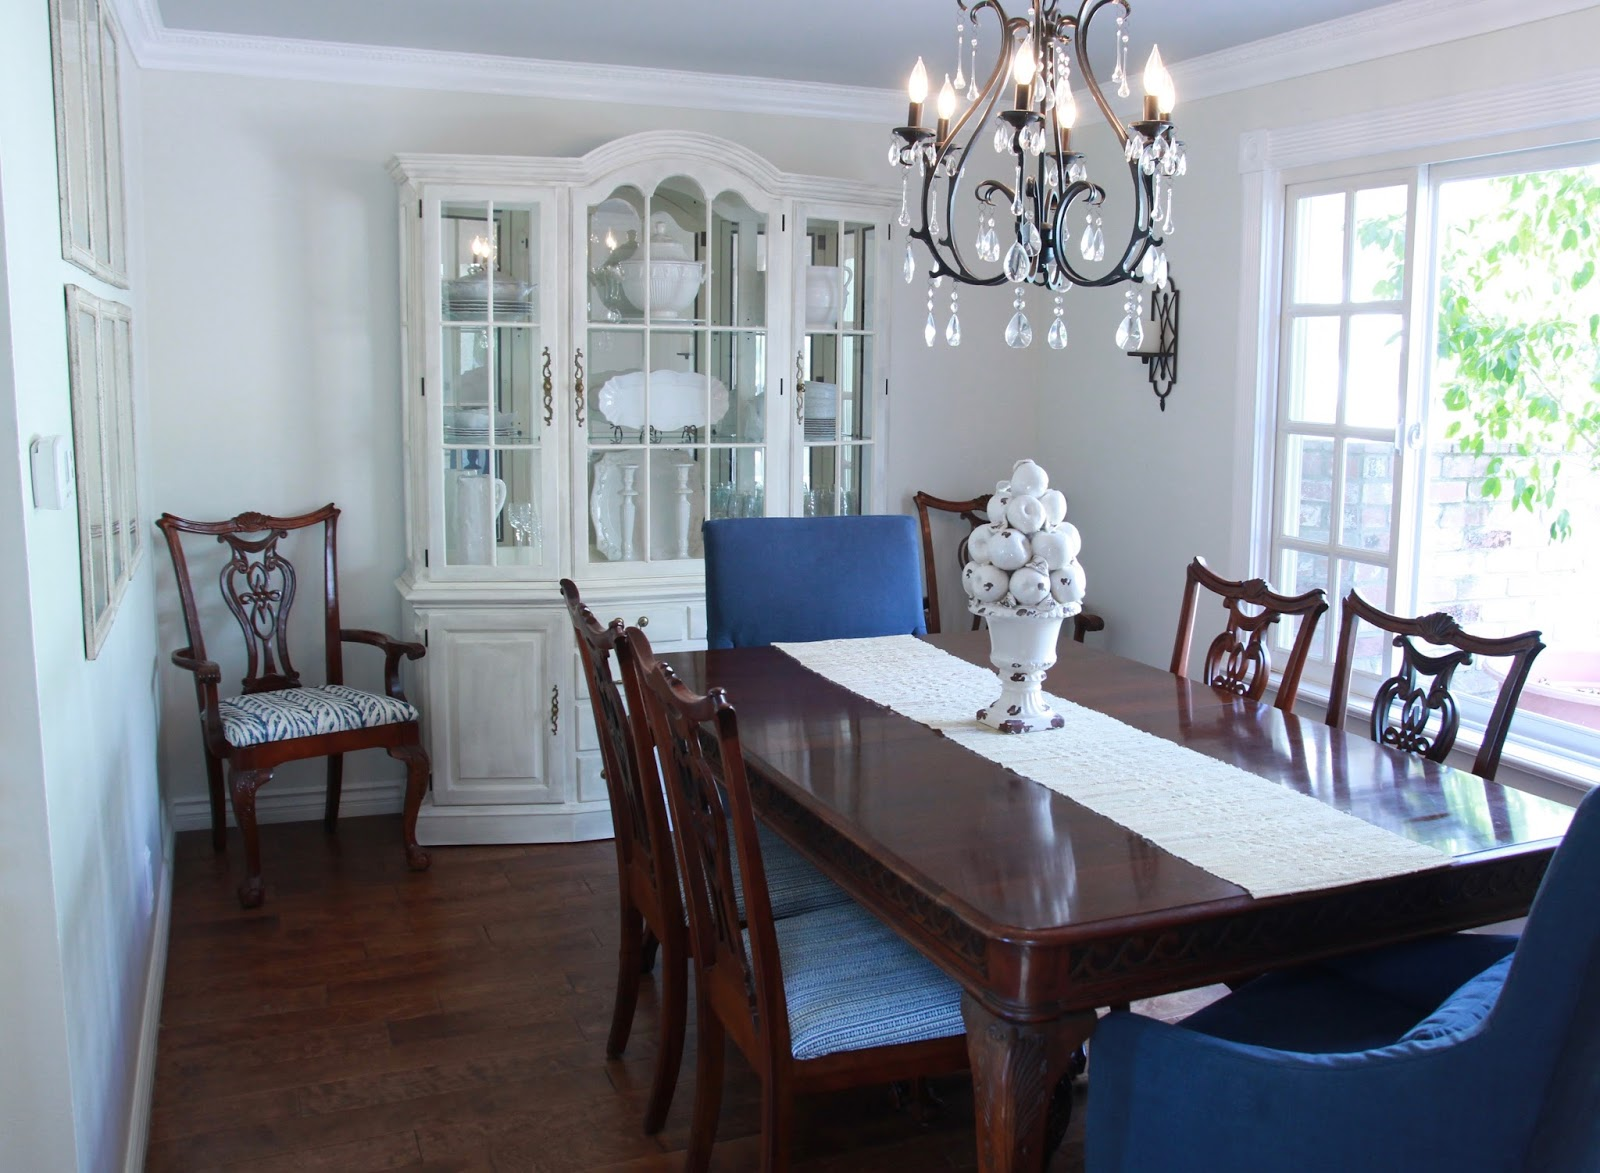 Dining Room Refresh Without Starting Over! - Classic Casual Home